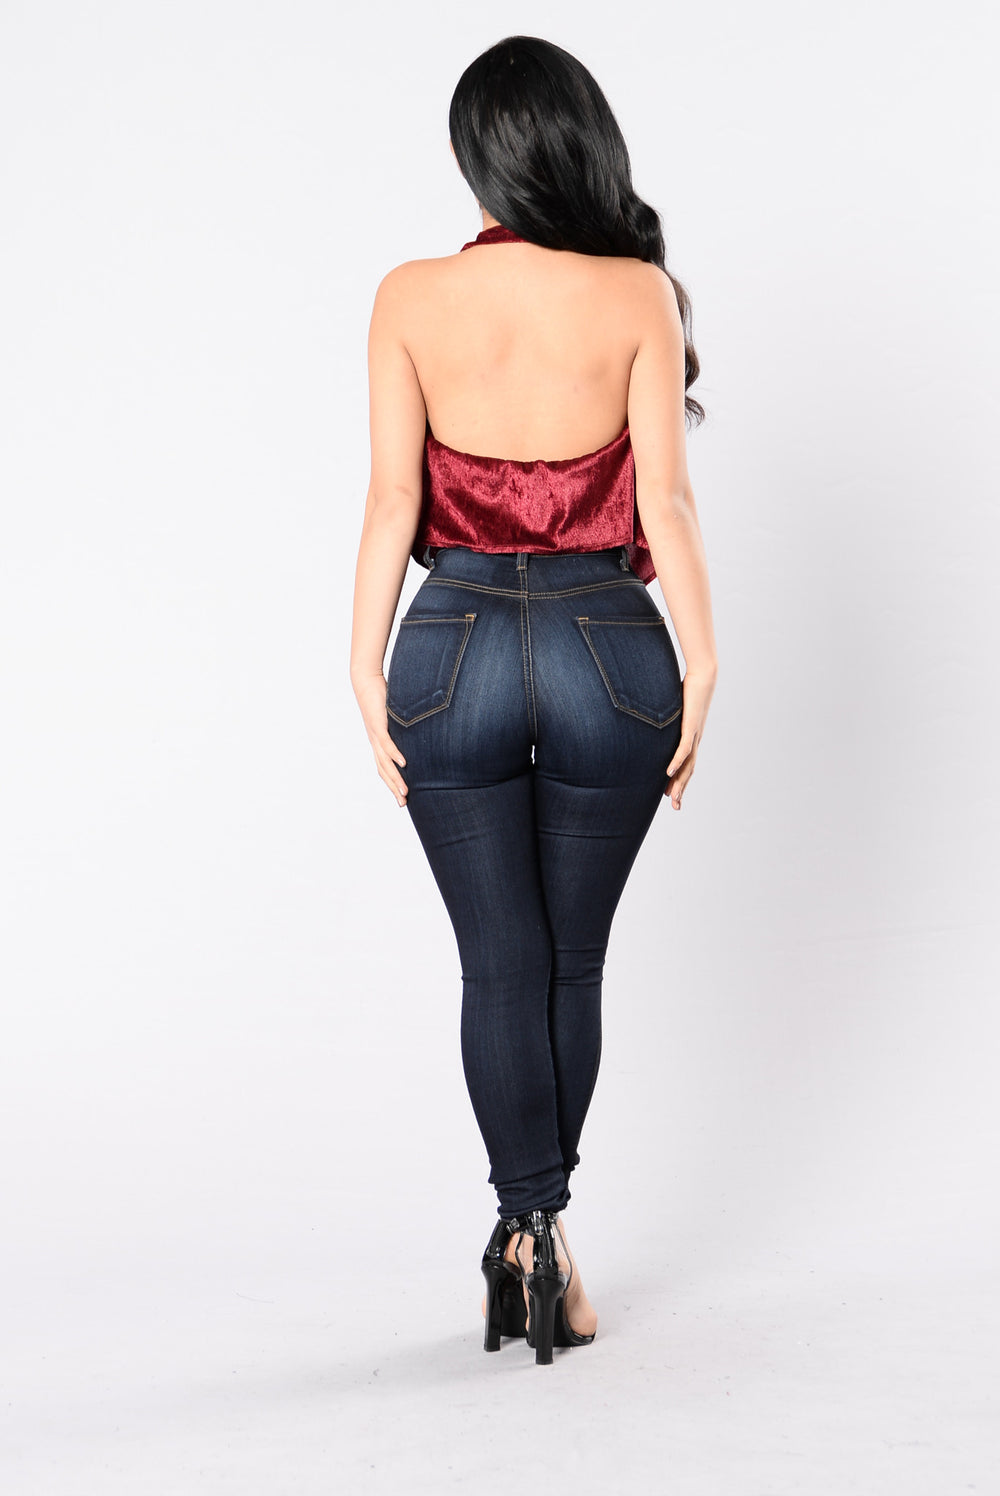 Drop, Crush, And Love It Top - Burgundy